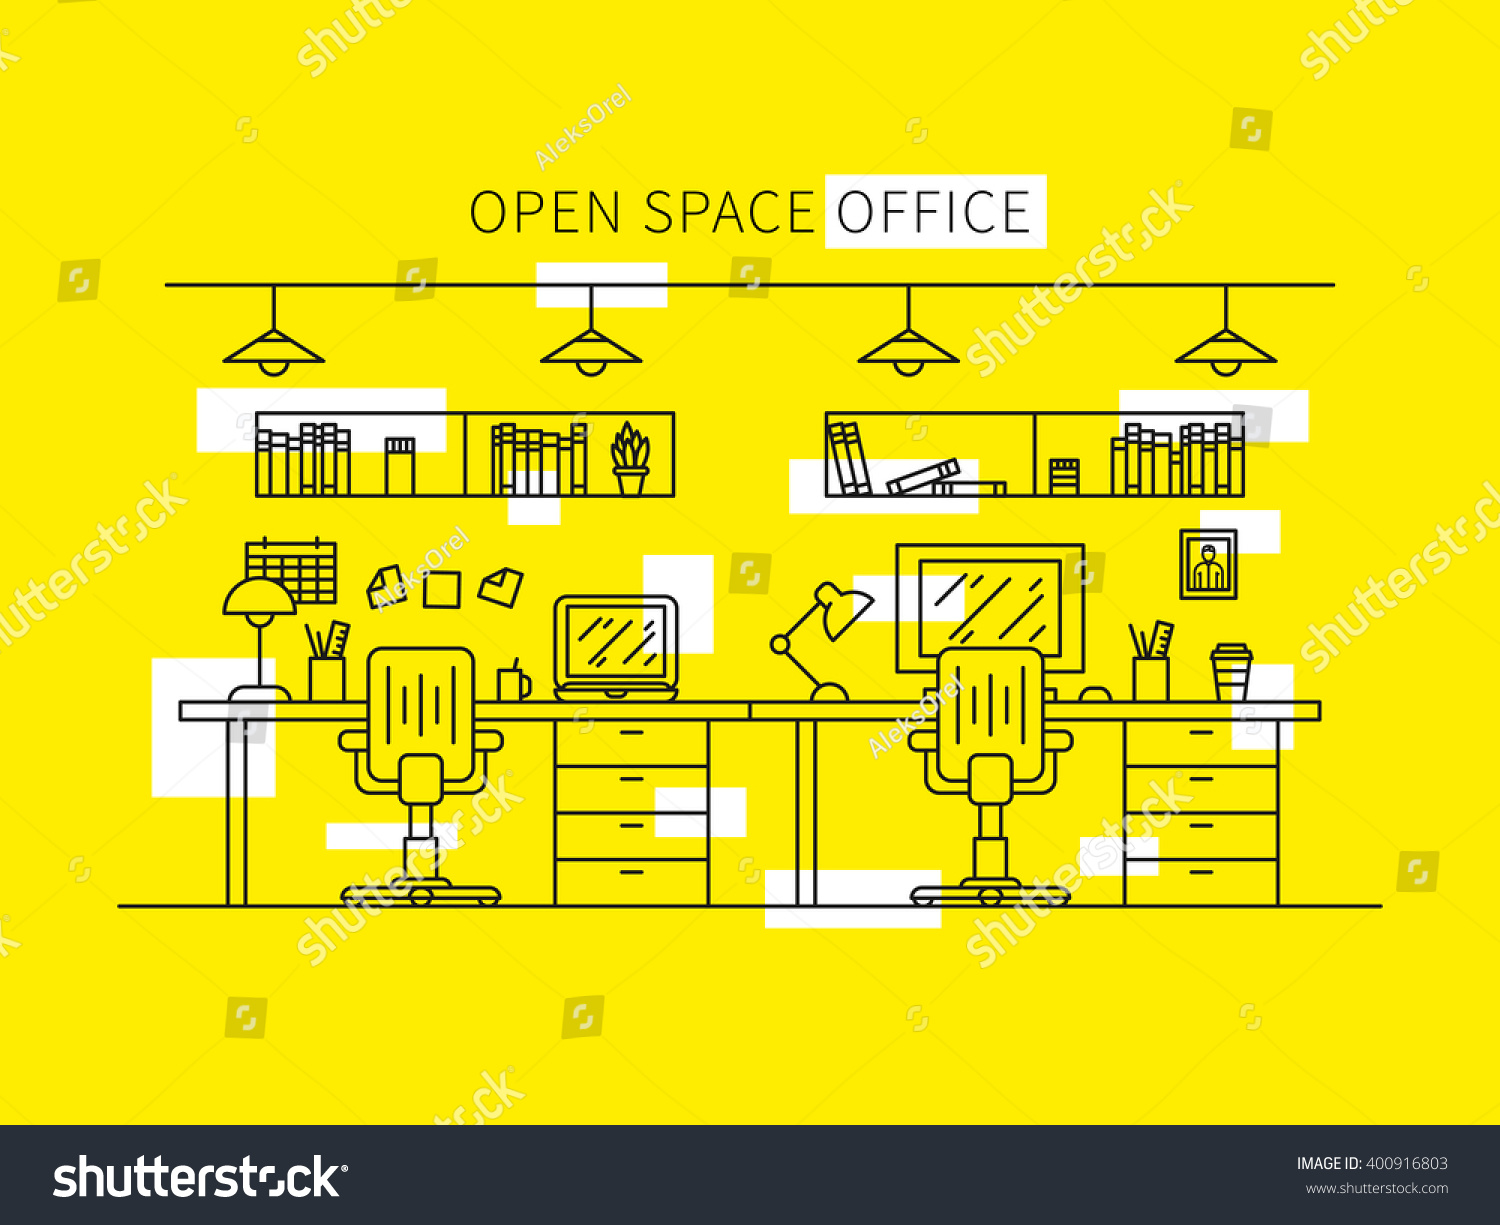 Online image photo editor shutterstock editor for Design office space online